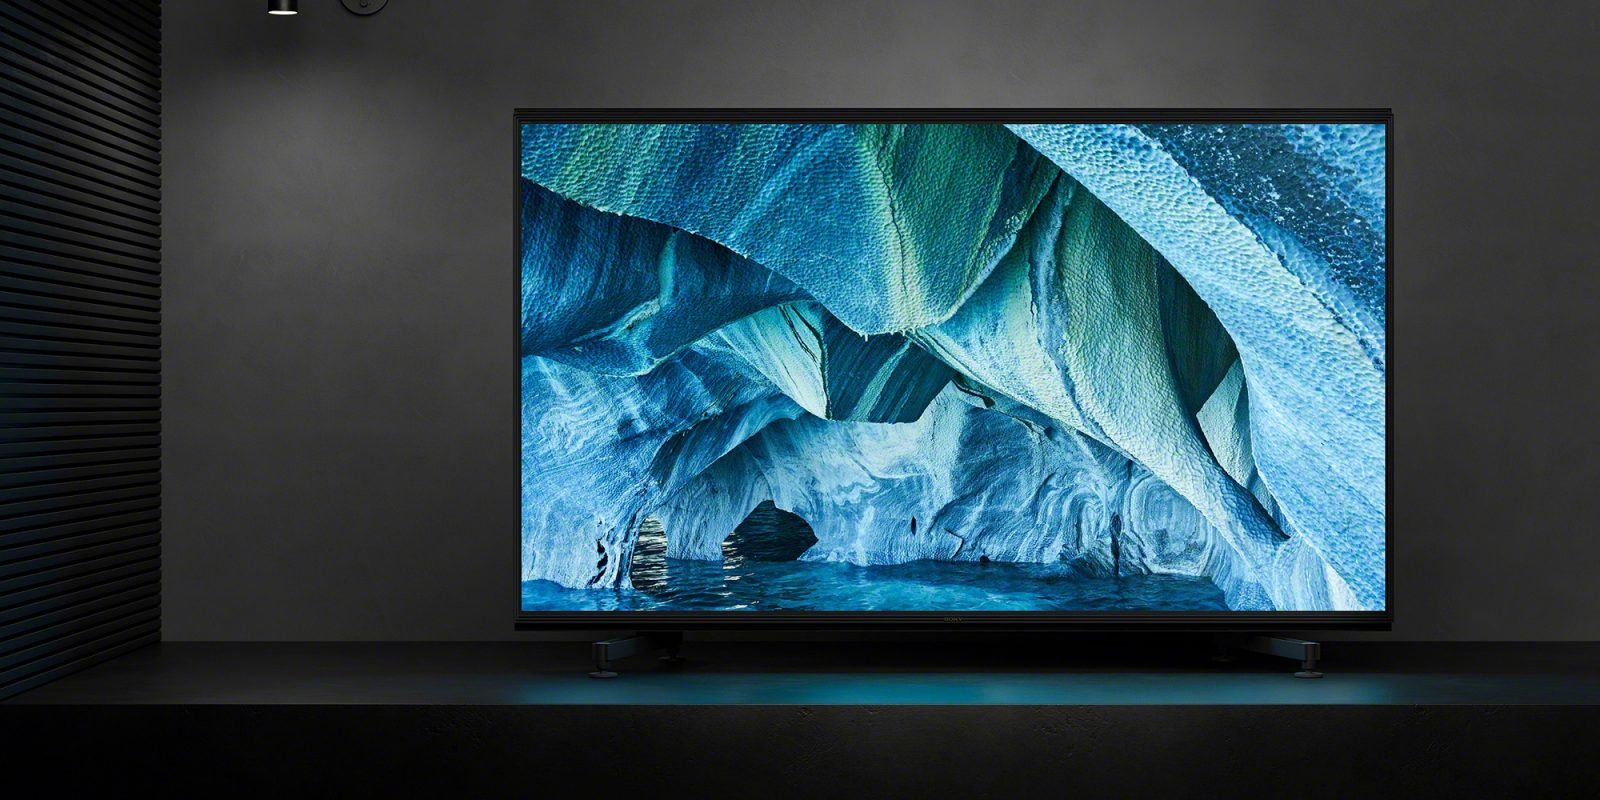 Sony debuts one of the first Android TV 8K models for $70k